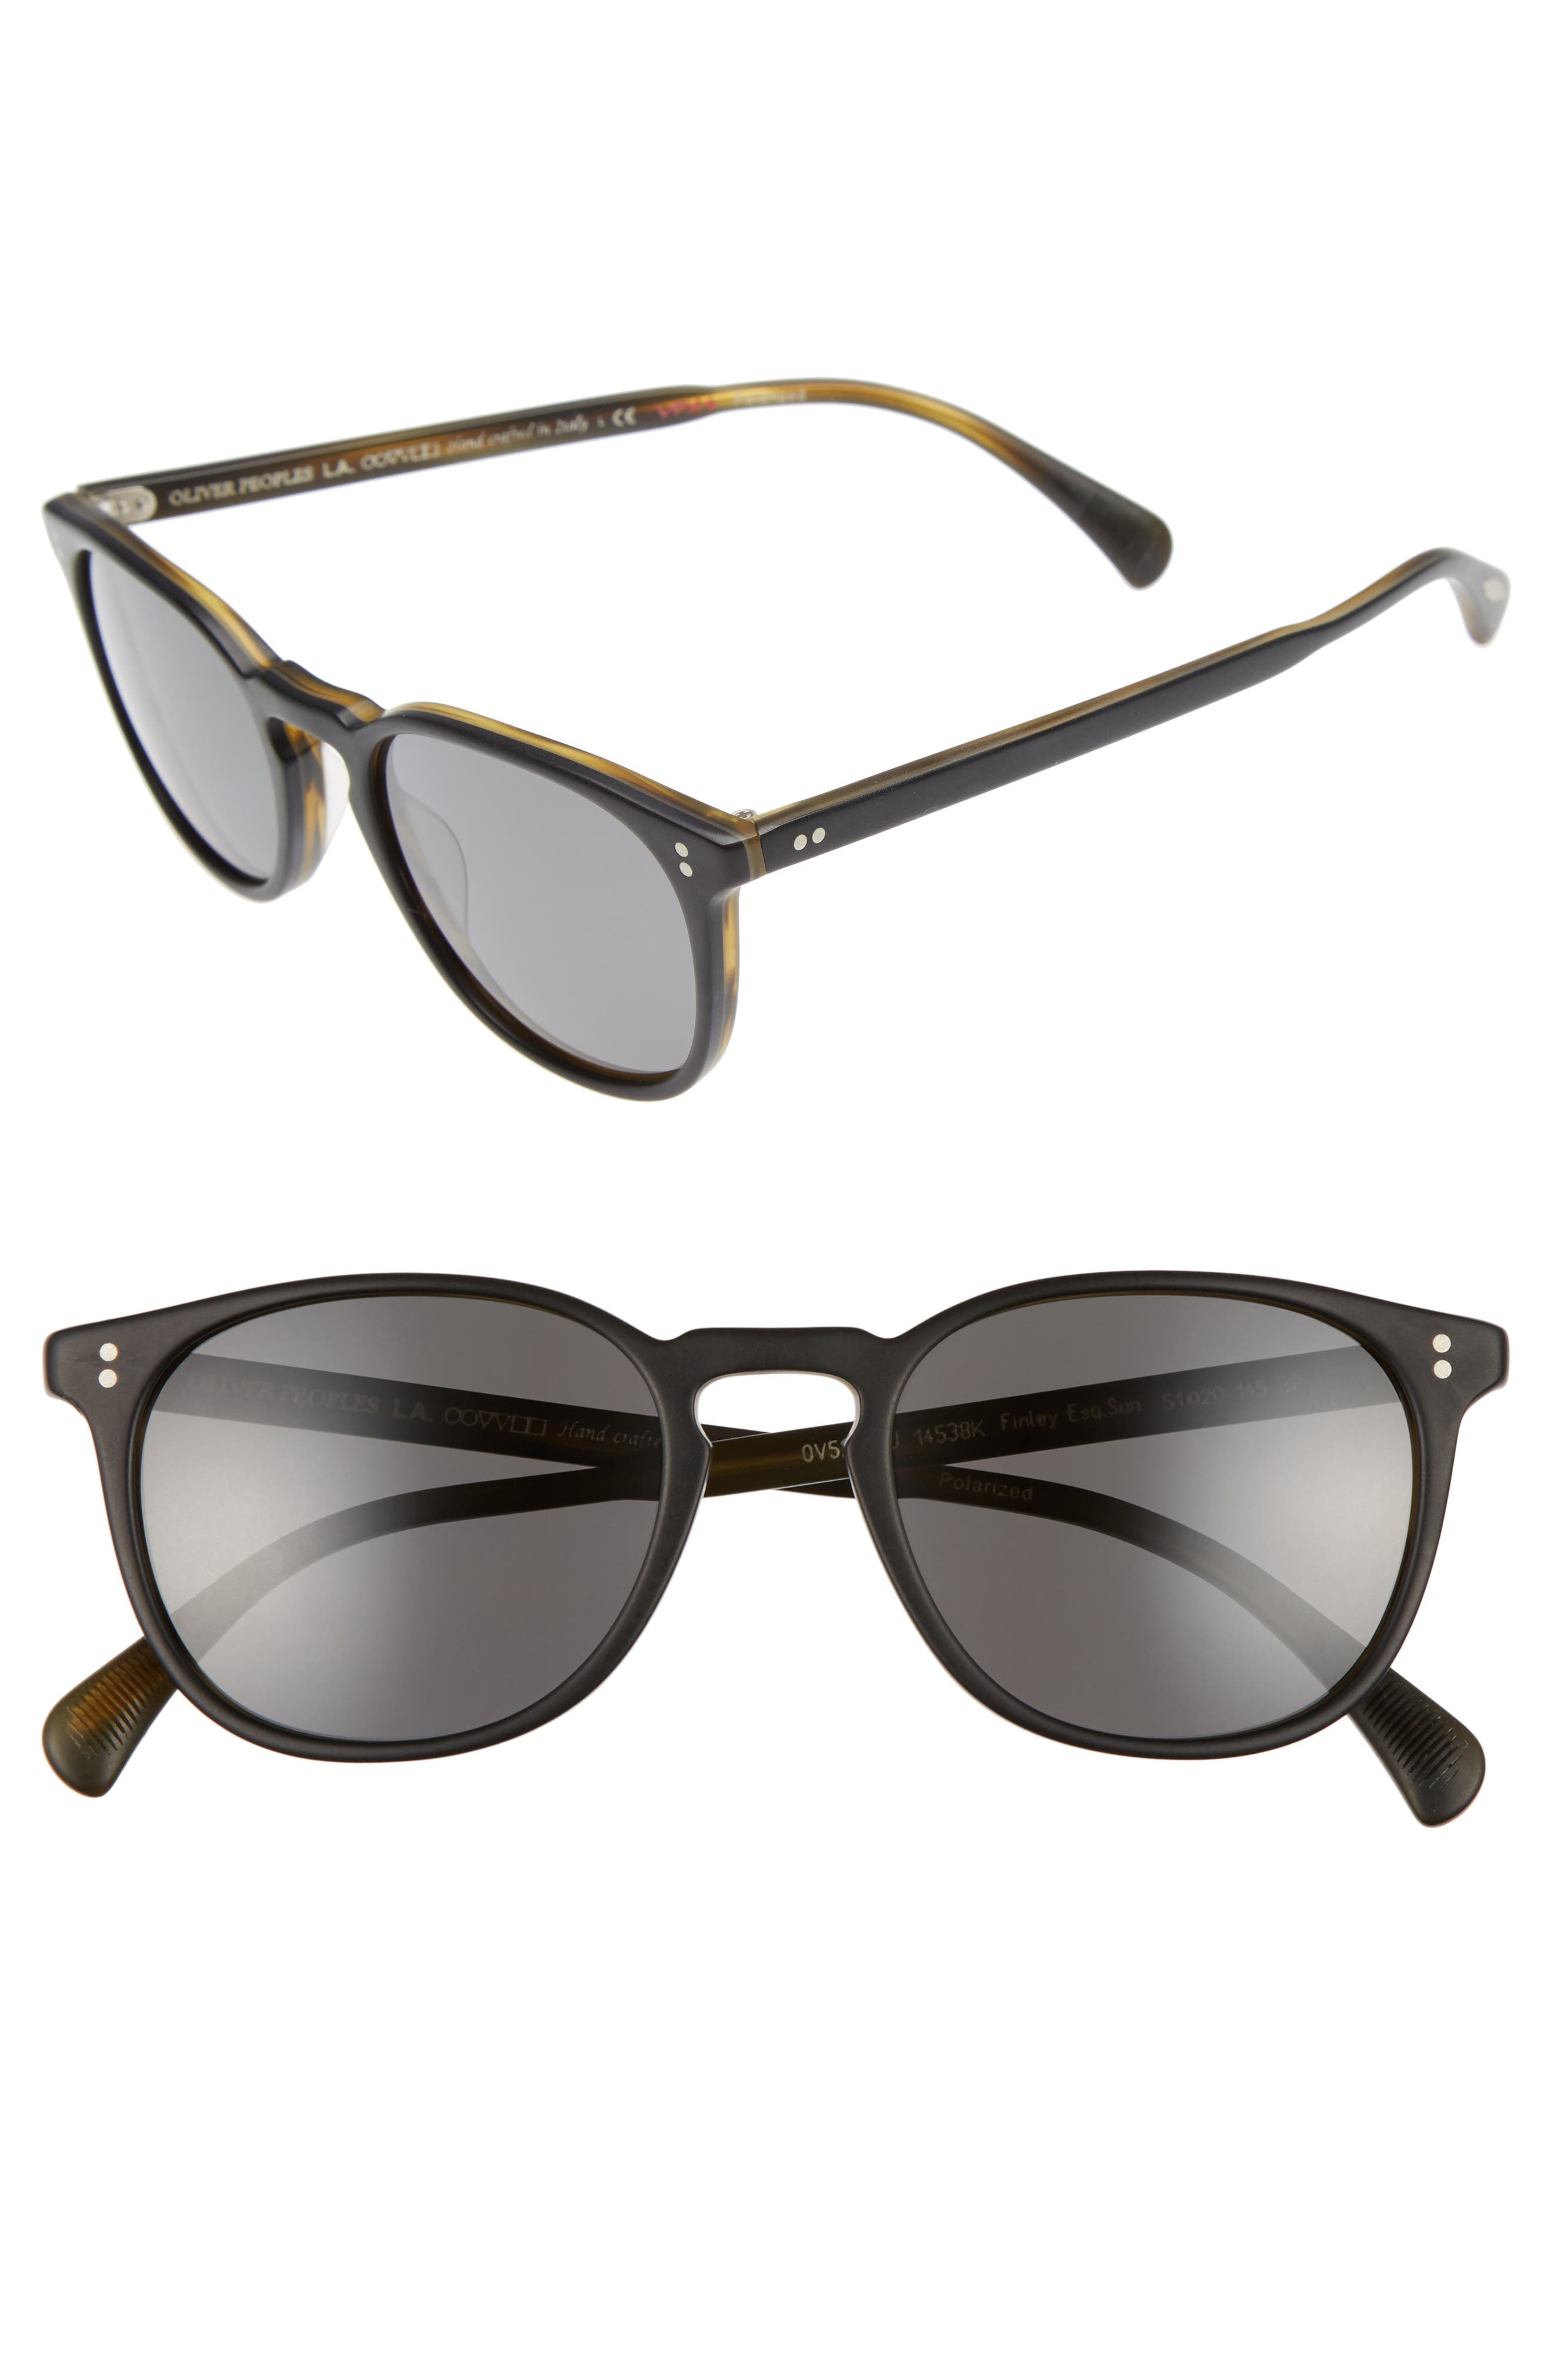 Main Image - Oliver Peoples Finley 51mm Retro Polarized Sunglasses